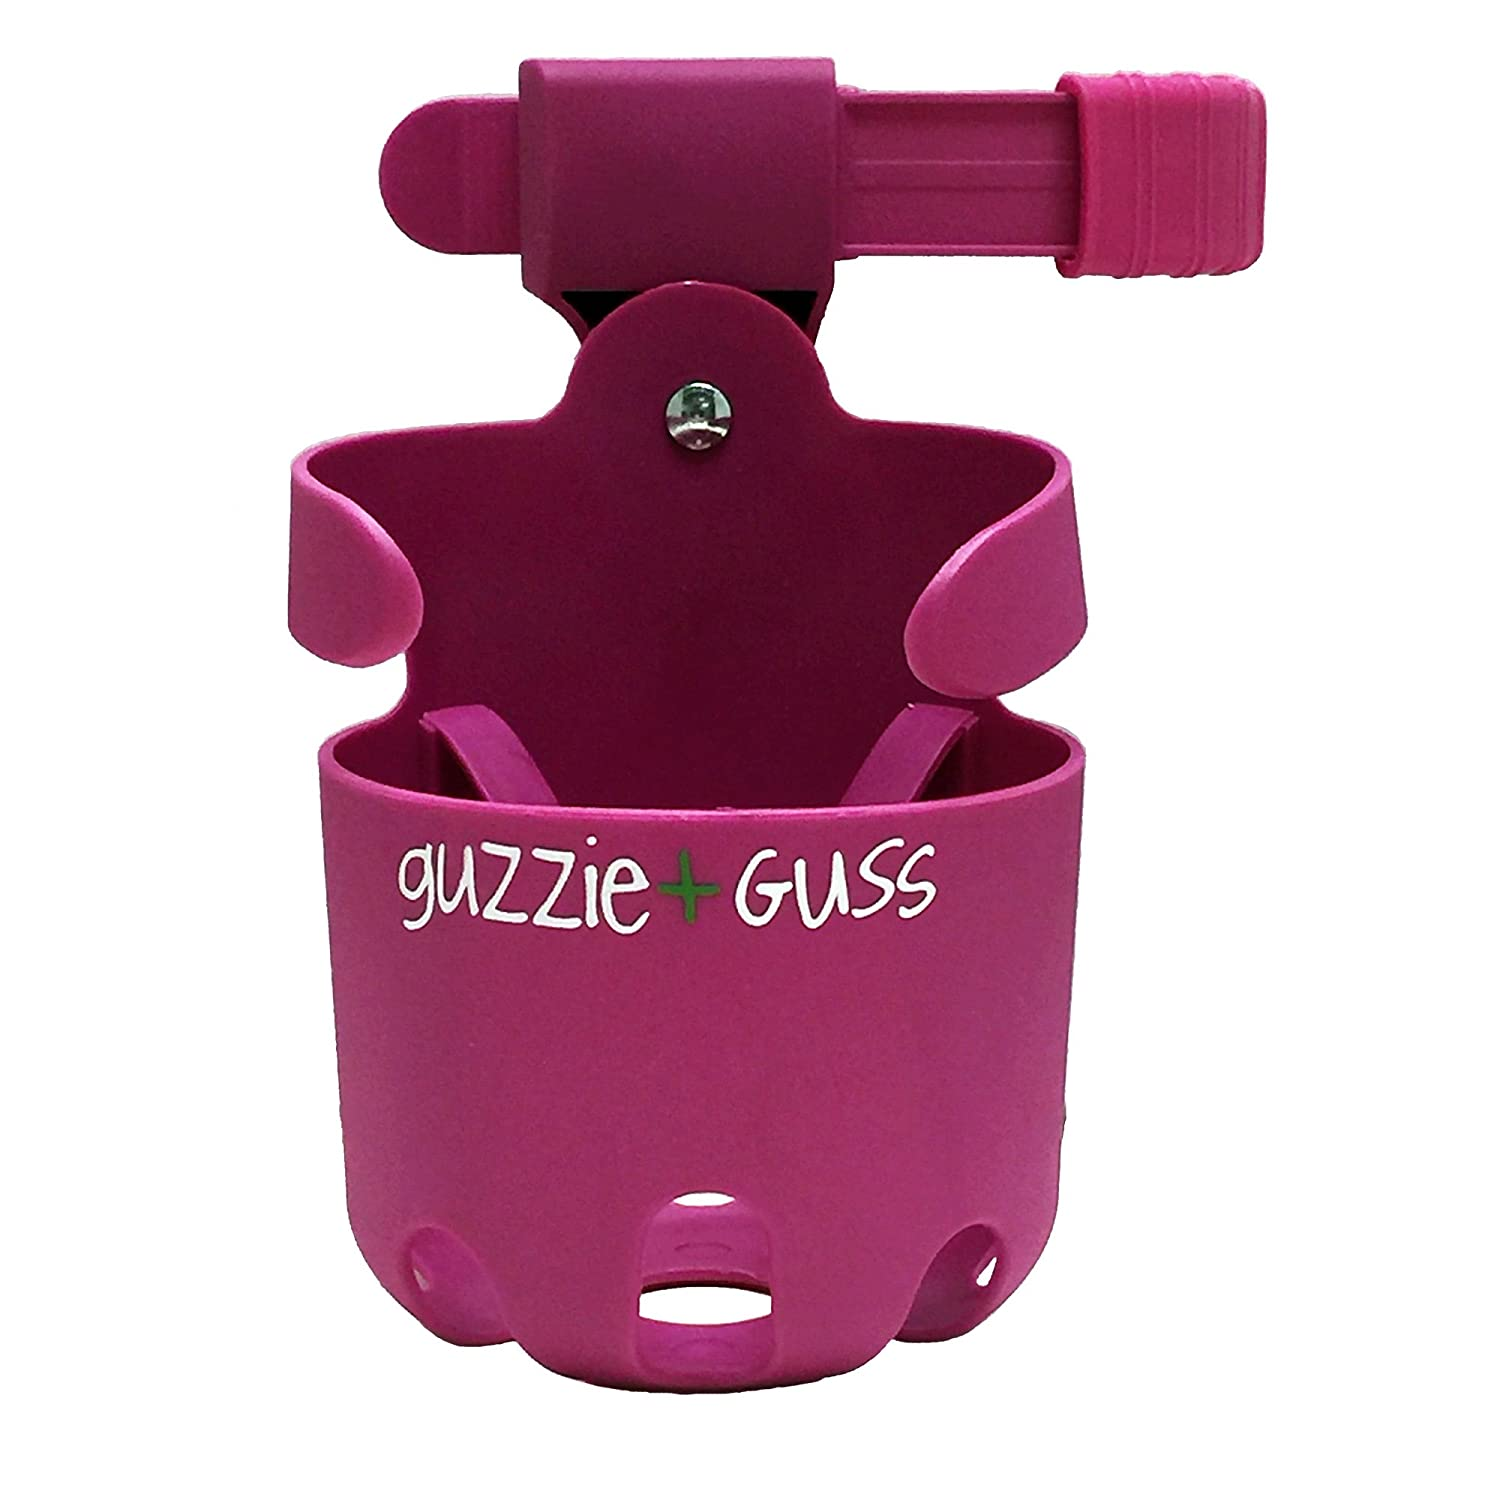 for Strollers guzzie+Guss Universal Cupholder Wheelchairs Install with Anti-Slip Sleeve Pink No Tool Easy Mobility Walkers Fits Wide Variety of Drink Containers Camping Chairs Bikes